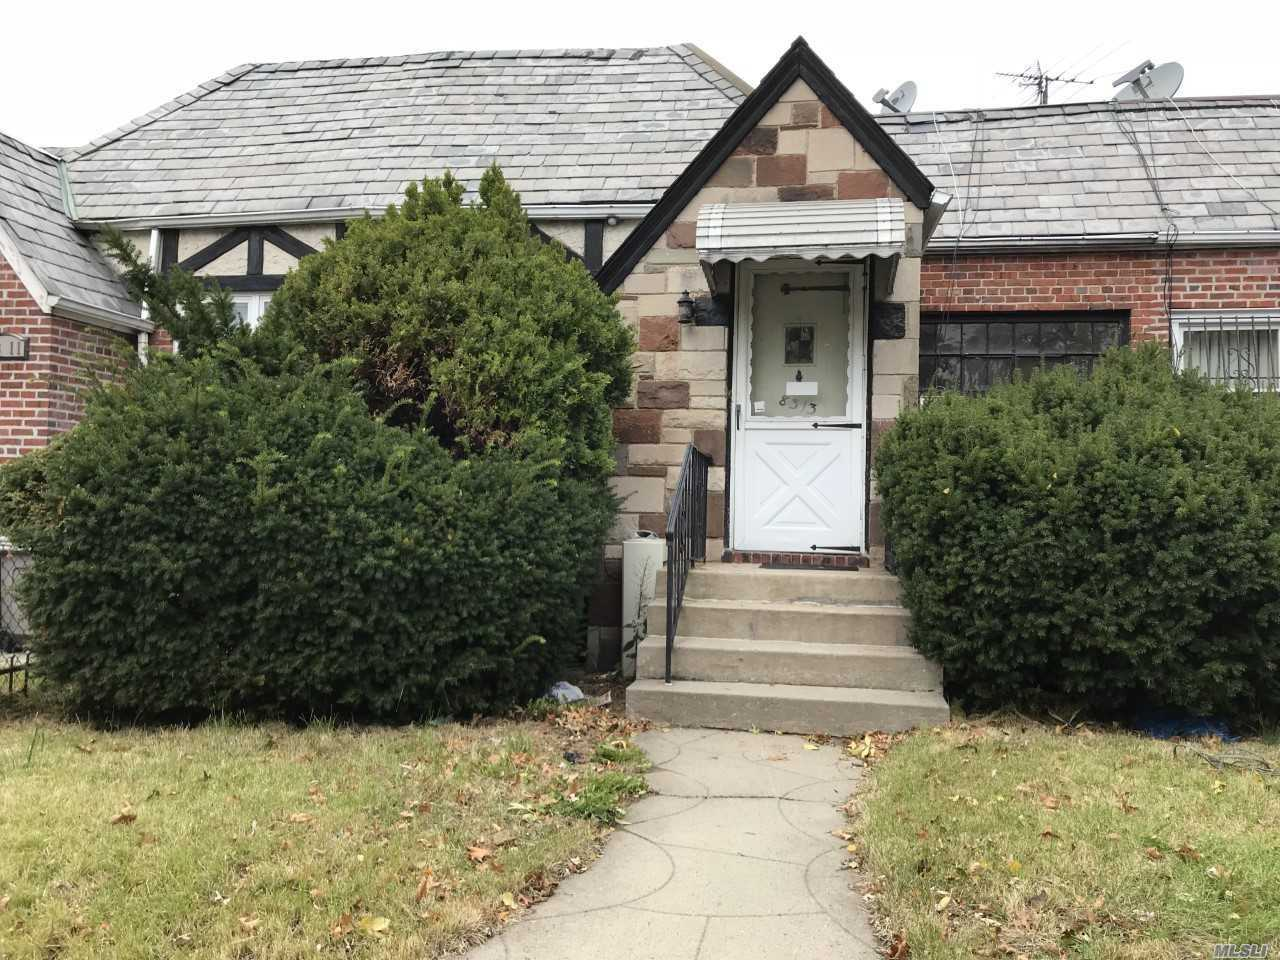 Great Location R4B Zoning. Needs Tlc. One Family, 2 Bedrooms, Full Basement, Garage, Near Transportation And Shopping.